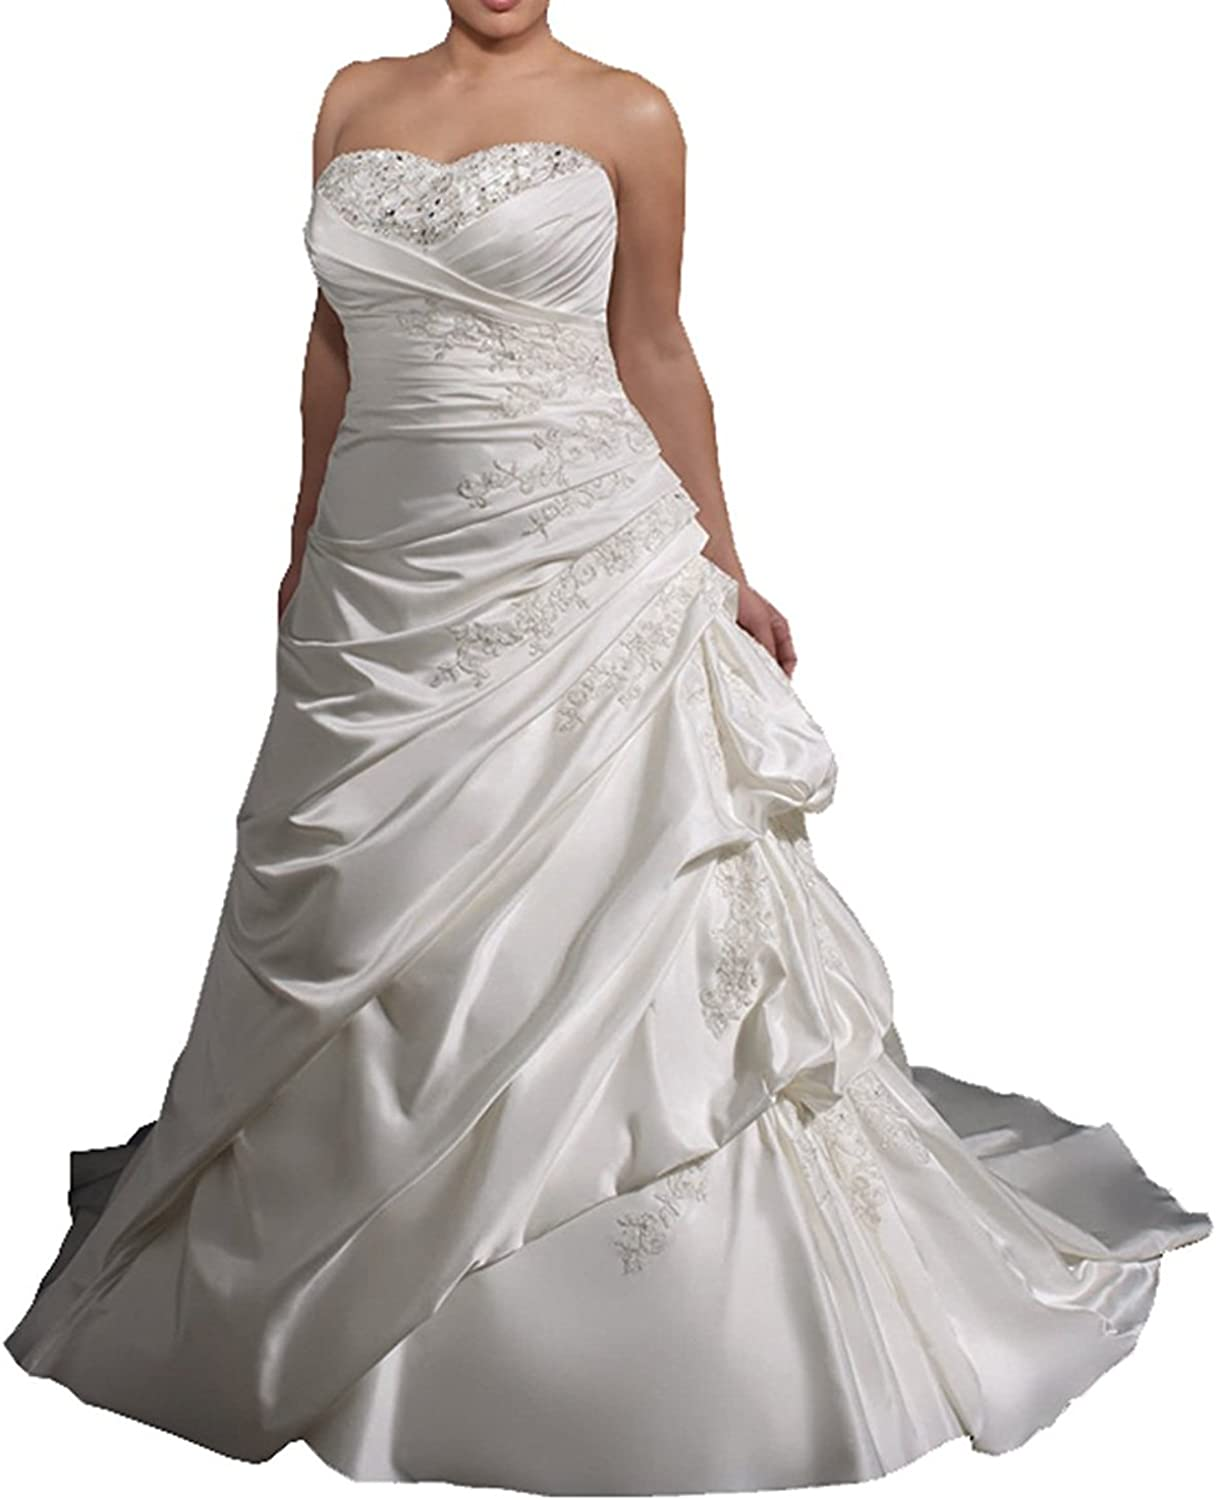 YanLian Womens Plue Size Sweetheart Plue Size Wedding Dress YL023